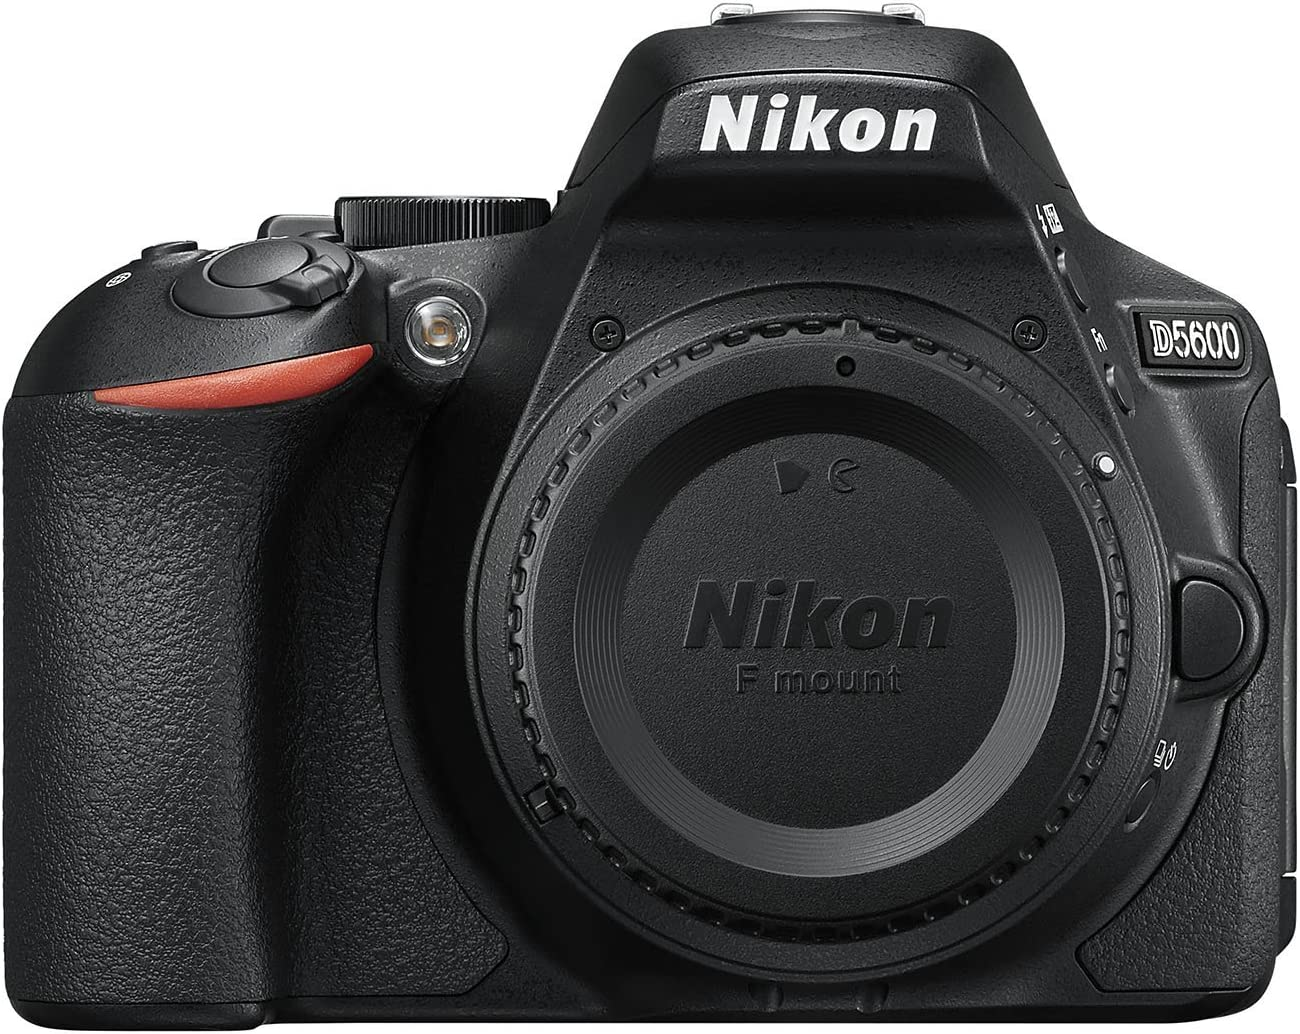 Nikon D5600 Black Friday & Cyber Monday Deals ([year]) 1